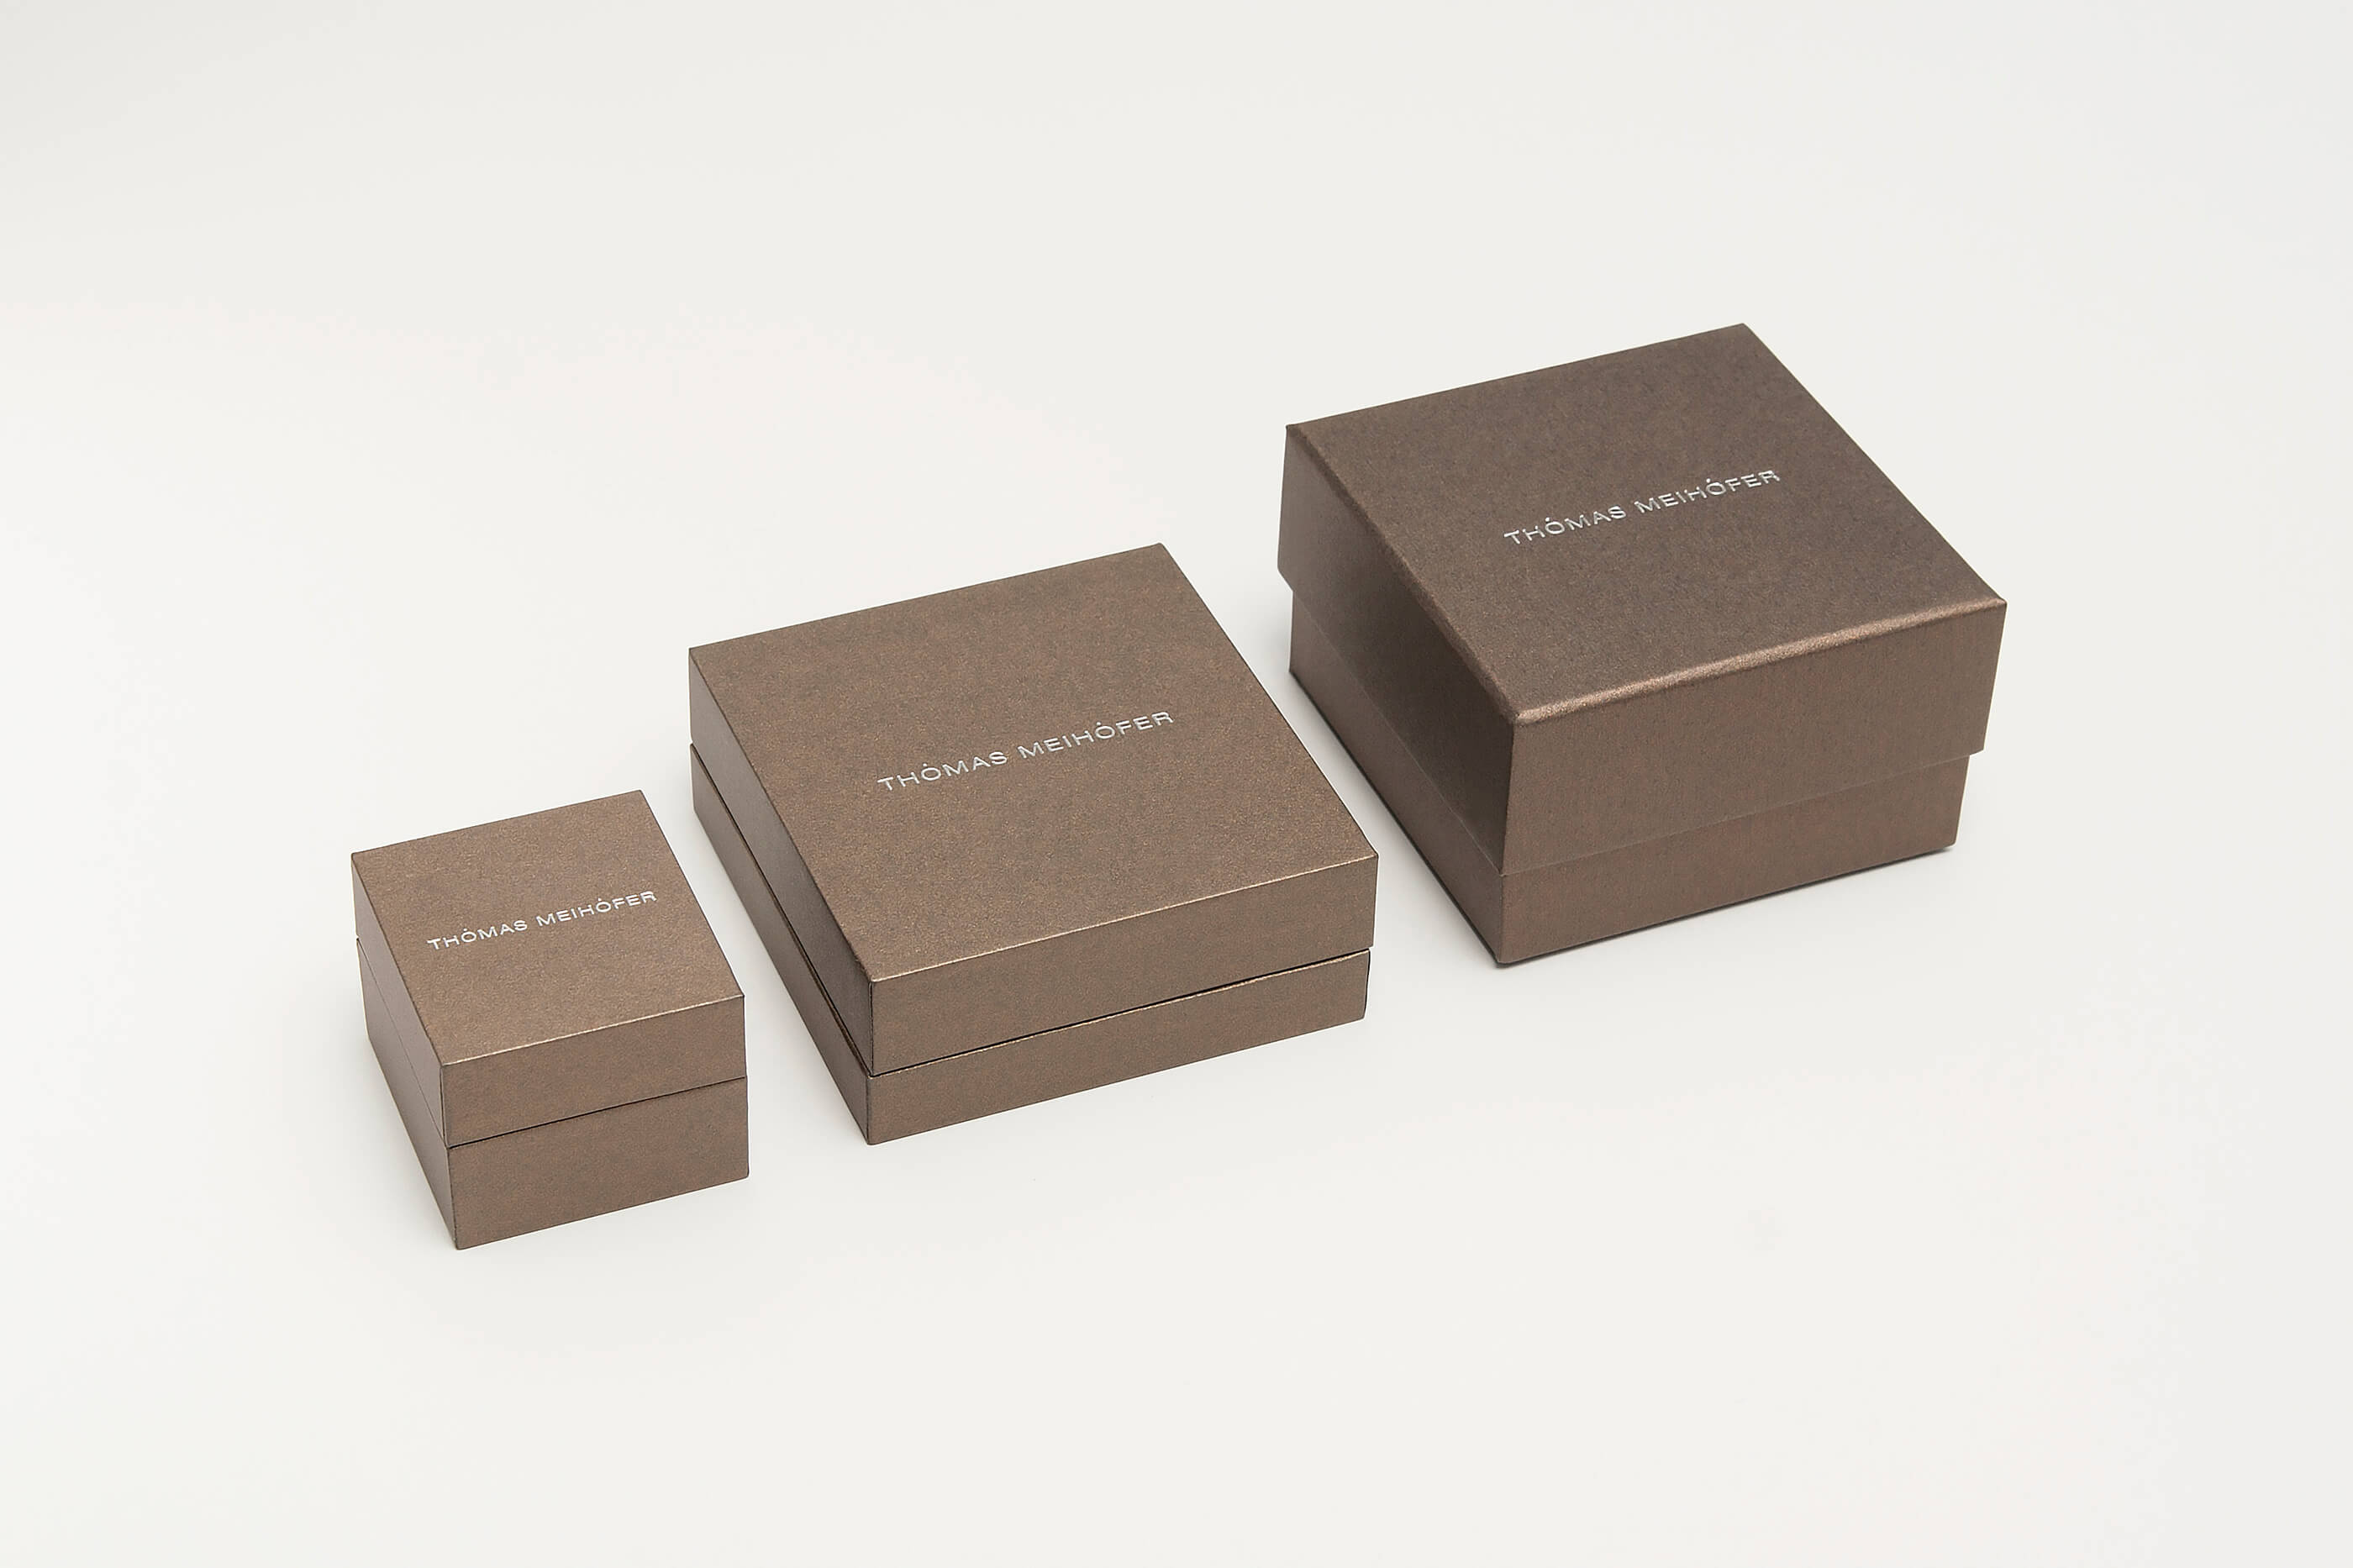 thomas_meihofer_box_3